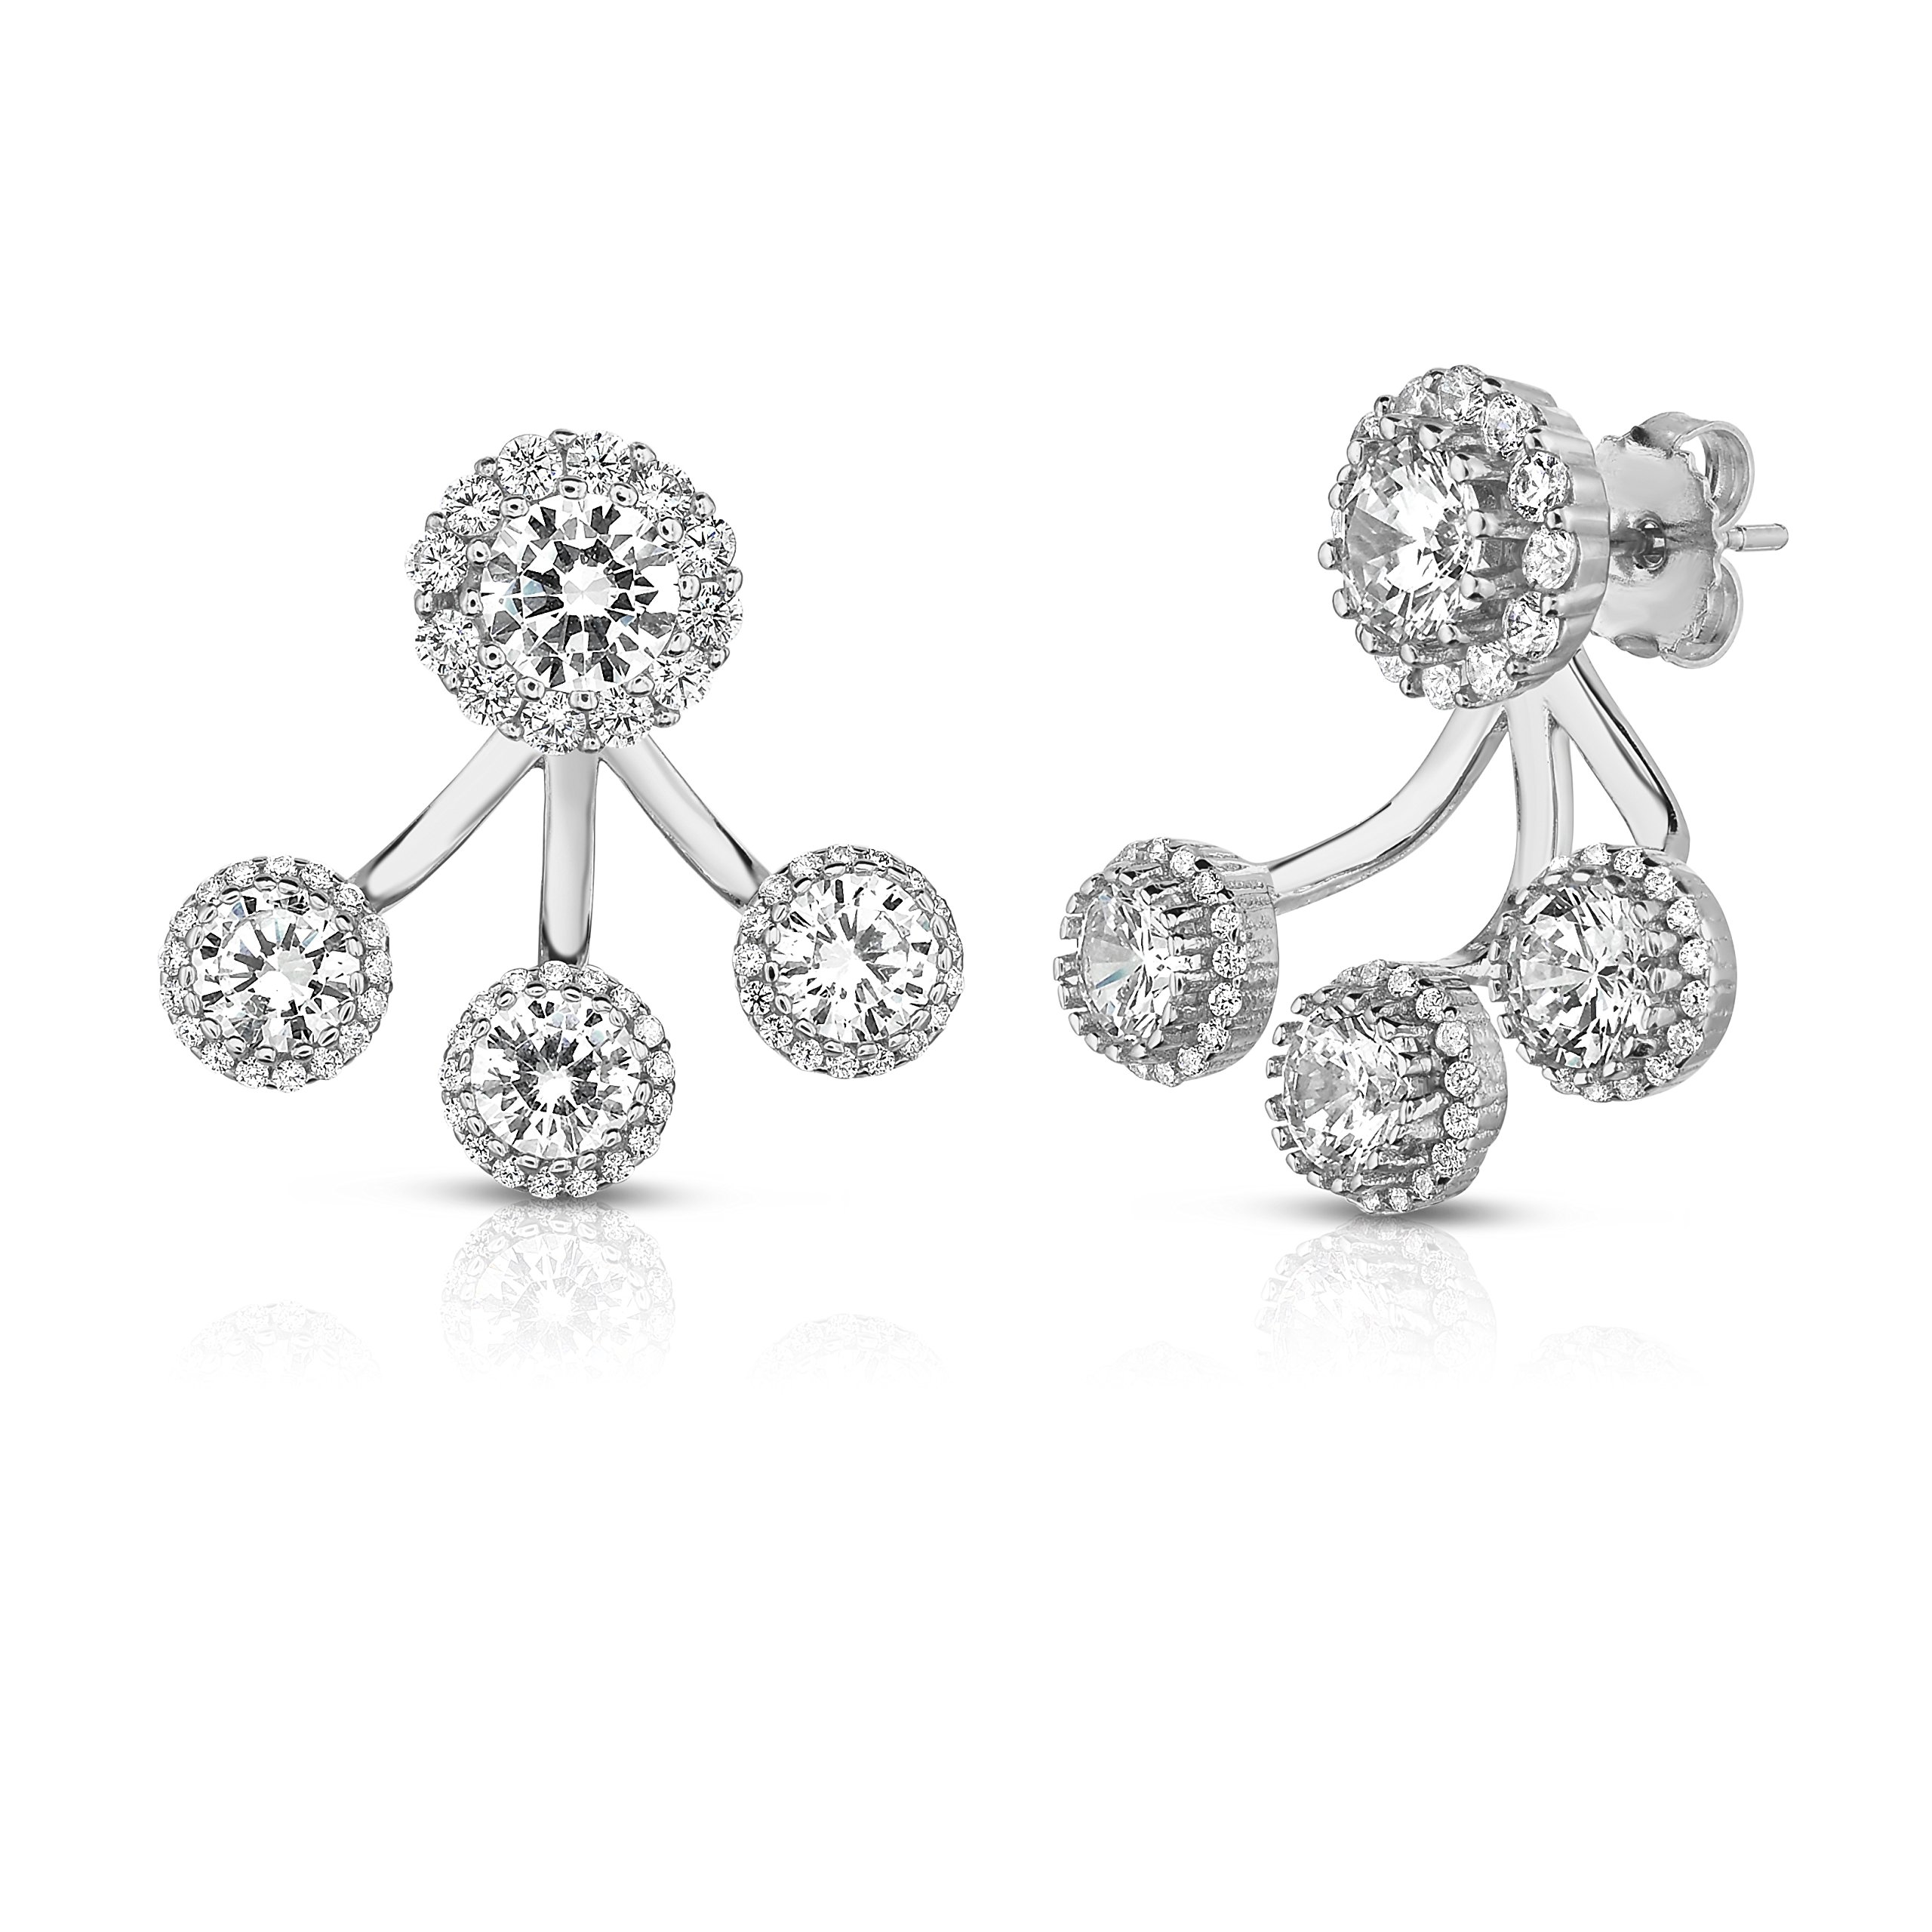 Sterling Silver Front Back 2 in 1 Cubic Zirconia Halo Earrings and Ear Jacket Cuff Set. (Natural Silver)